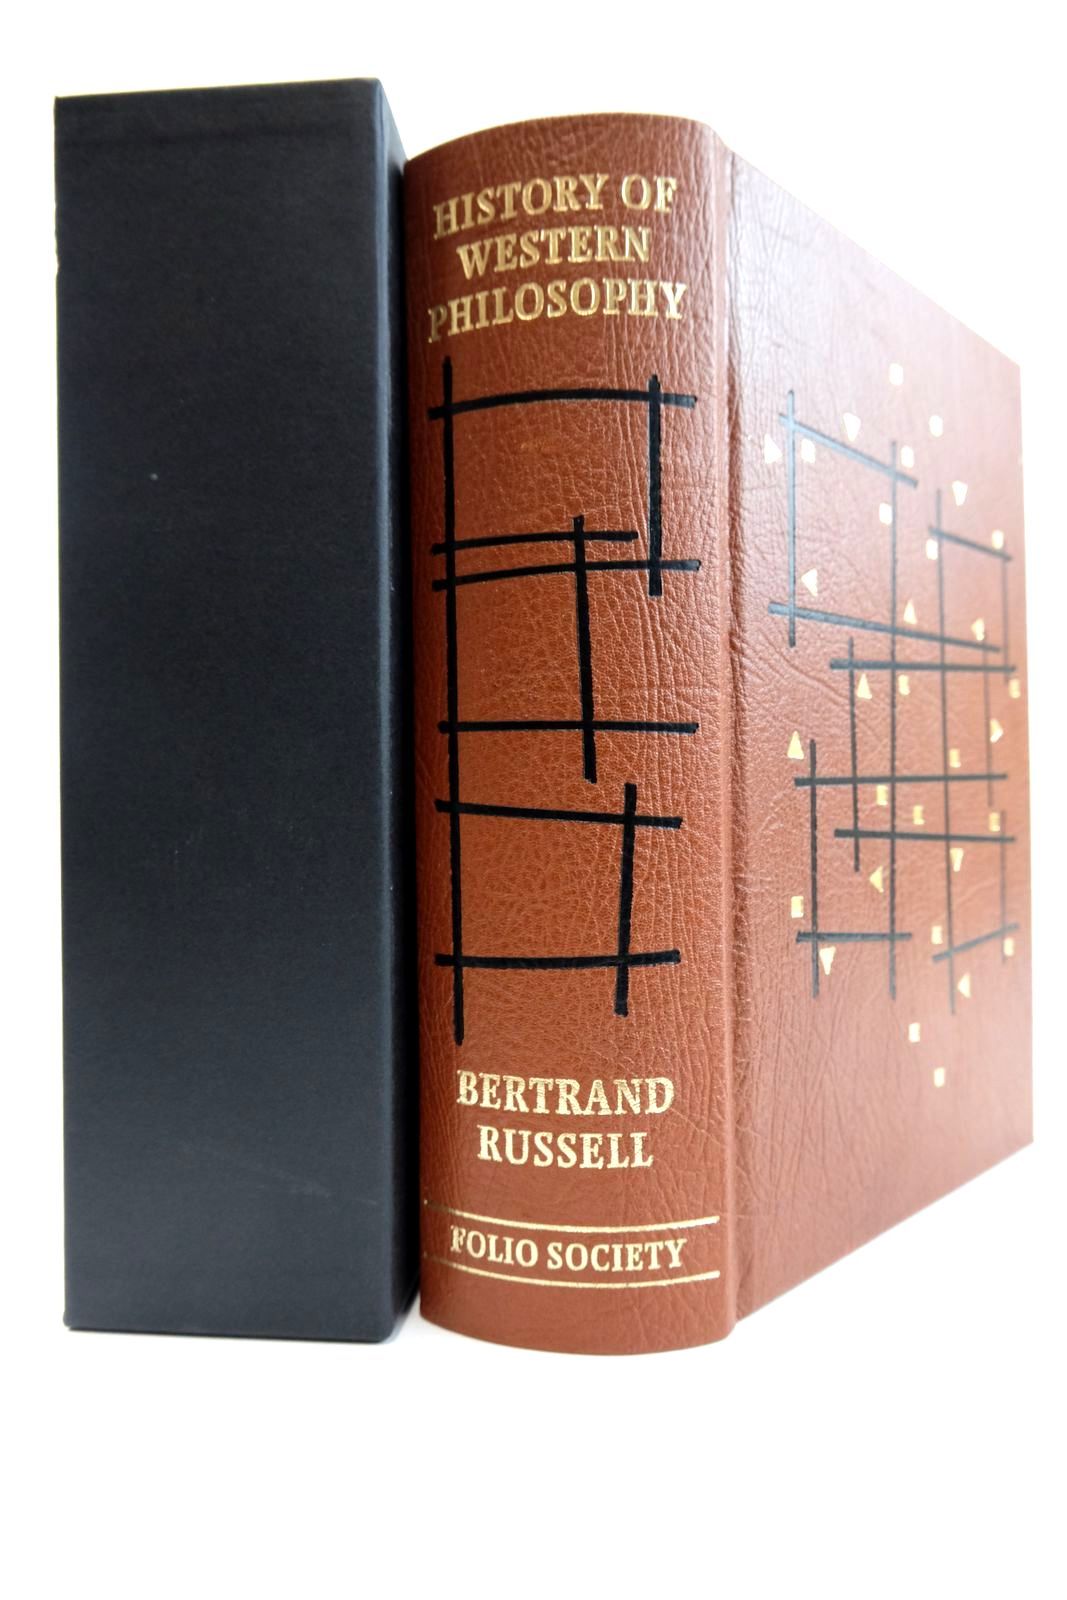 Photo of HISTORY OF WESTERN PHILOSOPHY written by Russell, Bertrand Grayling, A.C. published by Folio Society (STOCK CODE: 2133241)  for sale by Stella & Rose's Books